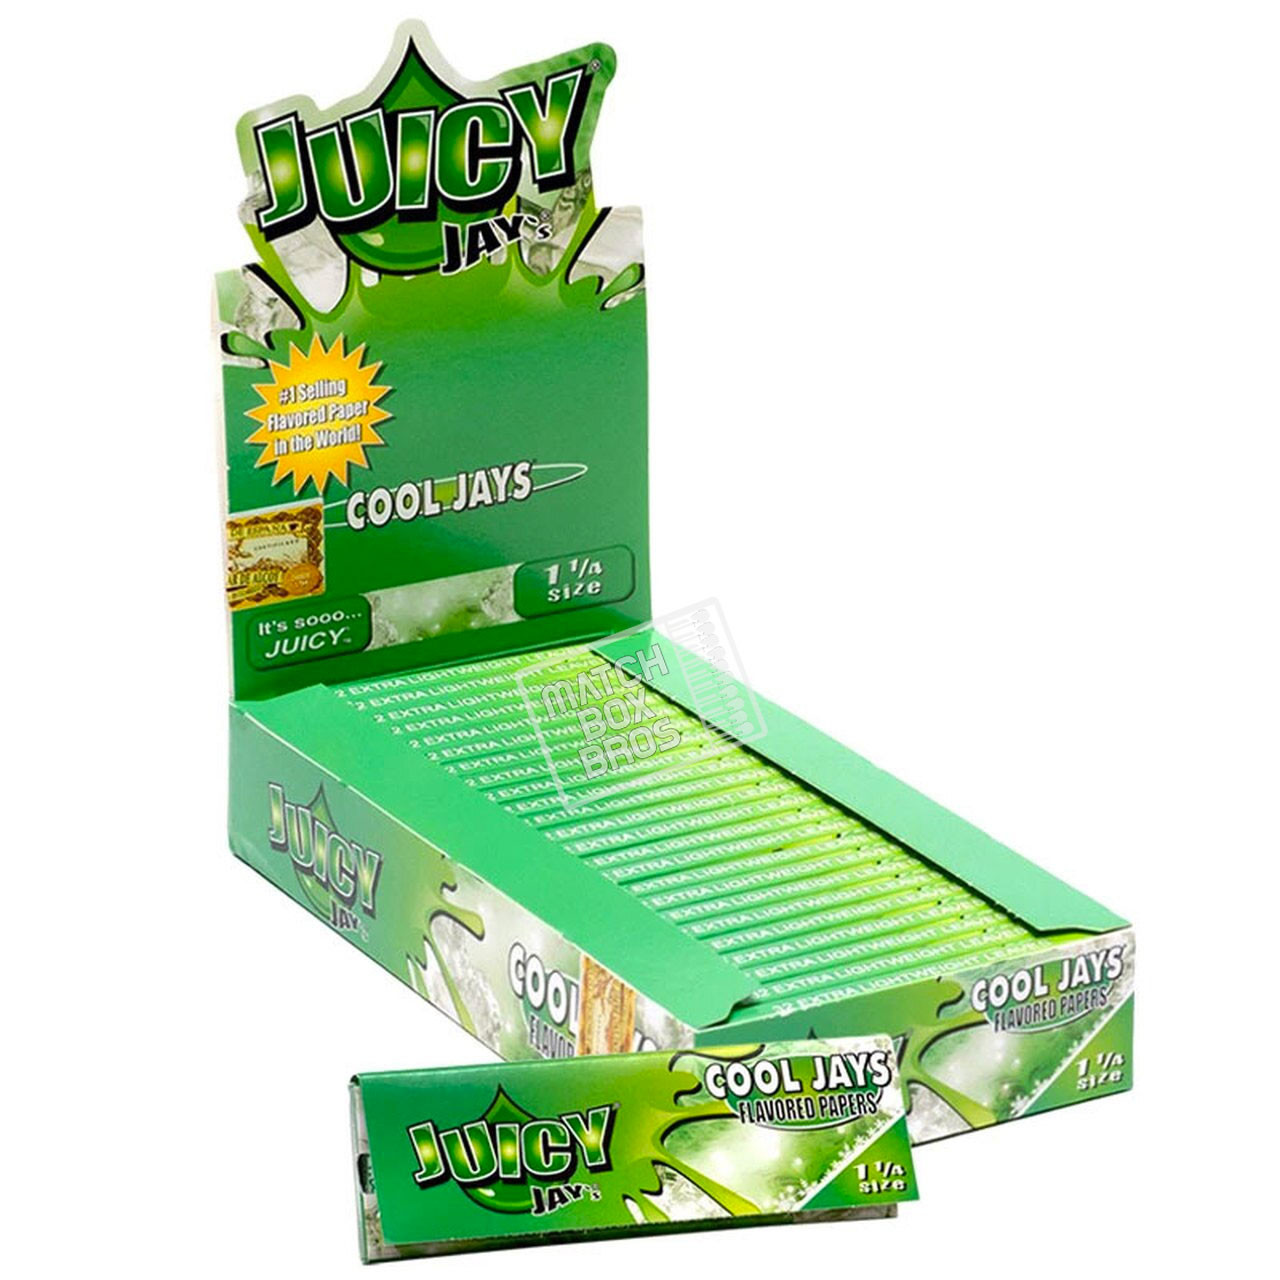 Juicy Jay's 1¼ Cool Jays Flavoured Paper